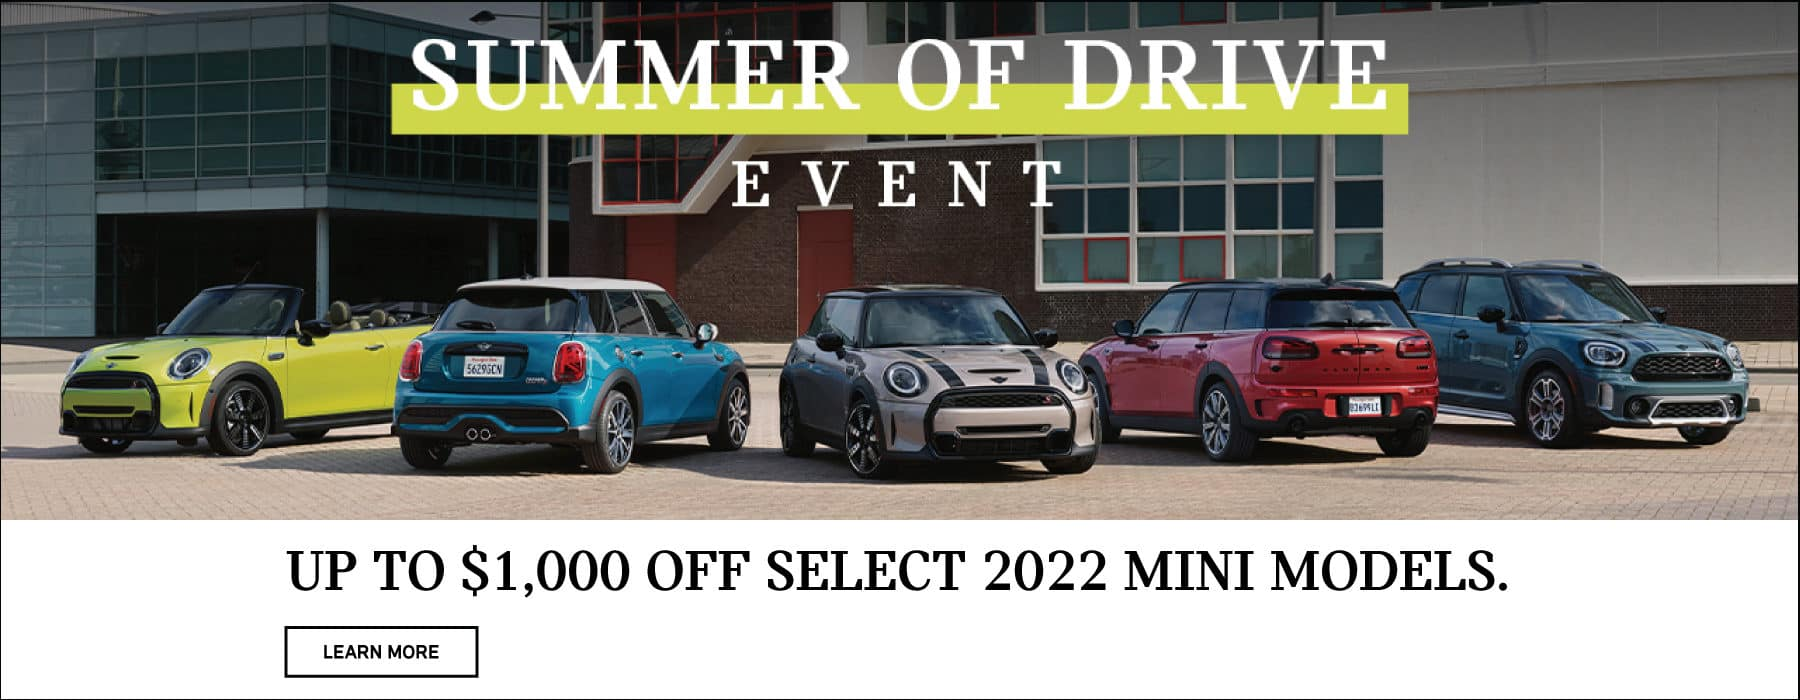 Up to $1,000 off select 2022 models.